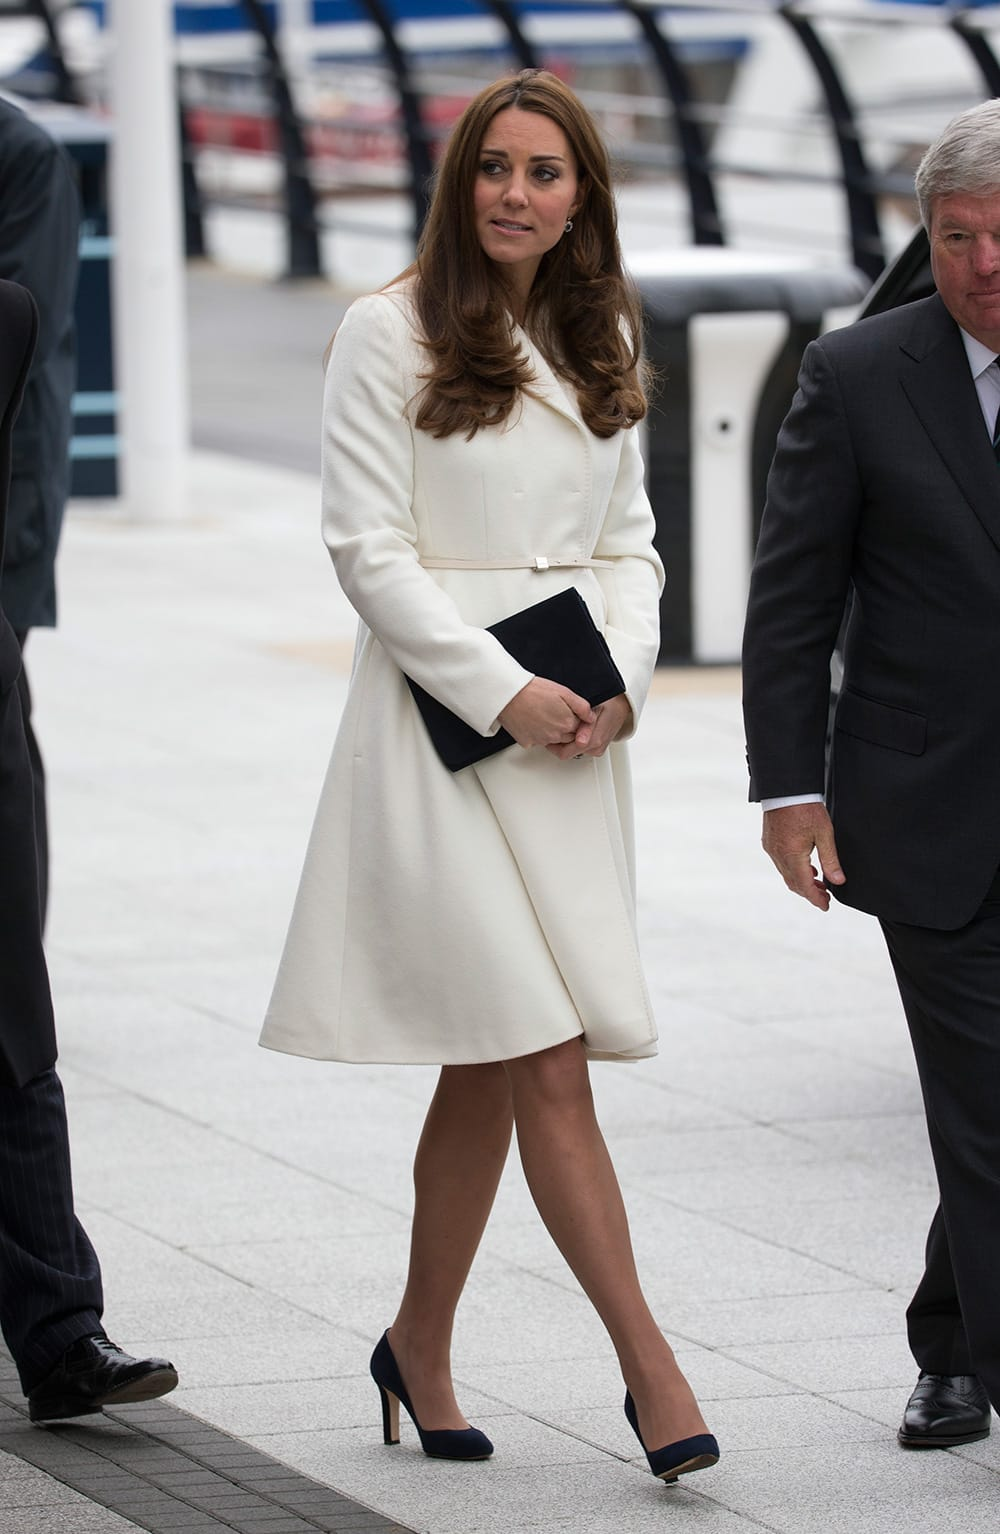 Britain's Kate Duchess of Cambridge, who is pregnant, arrives to attend a reception at the Spinnaker Tower in Portsmouth, England.